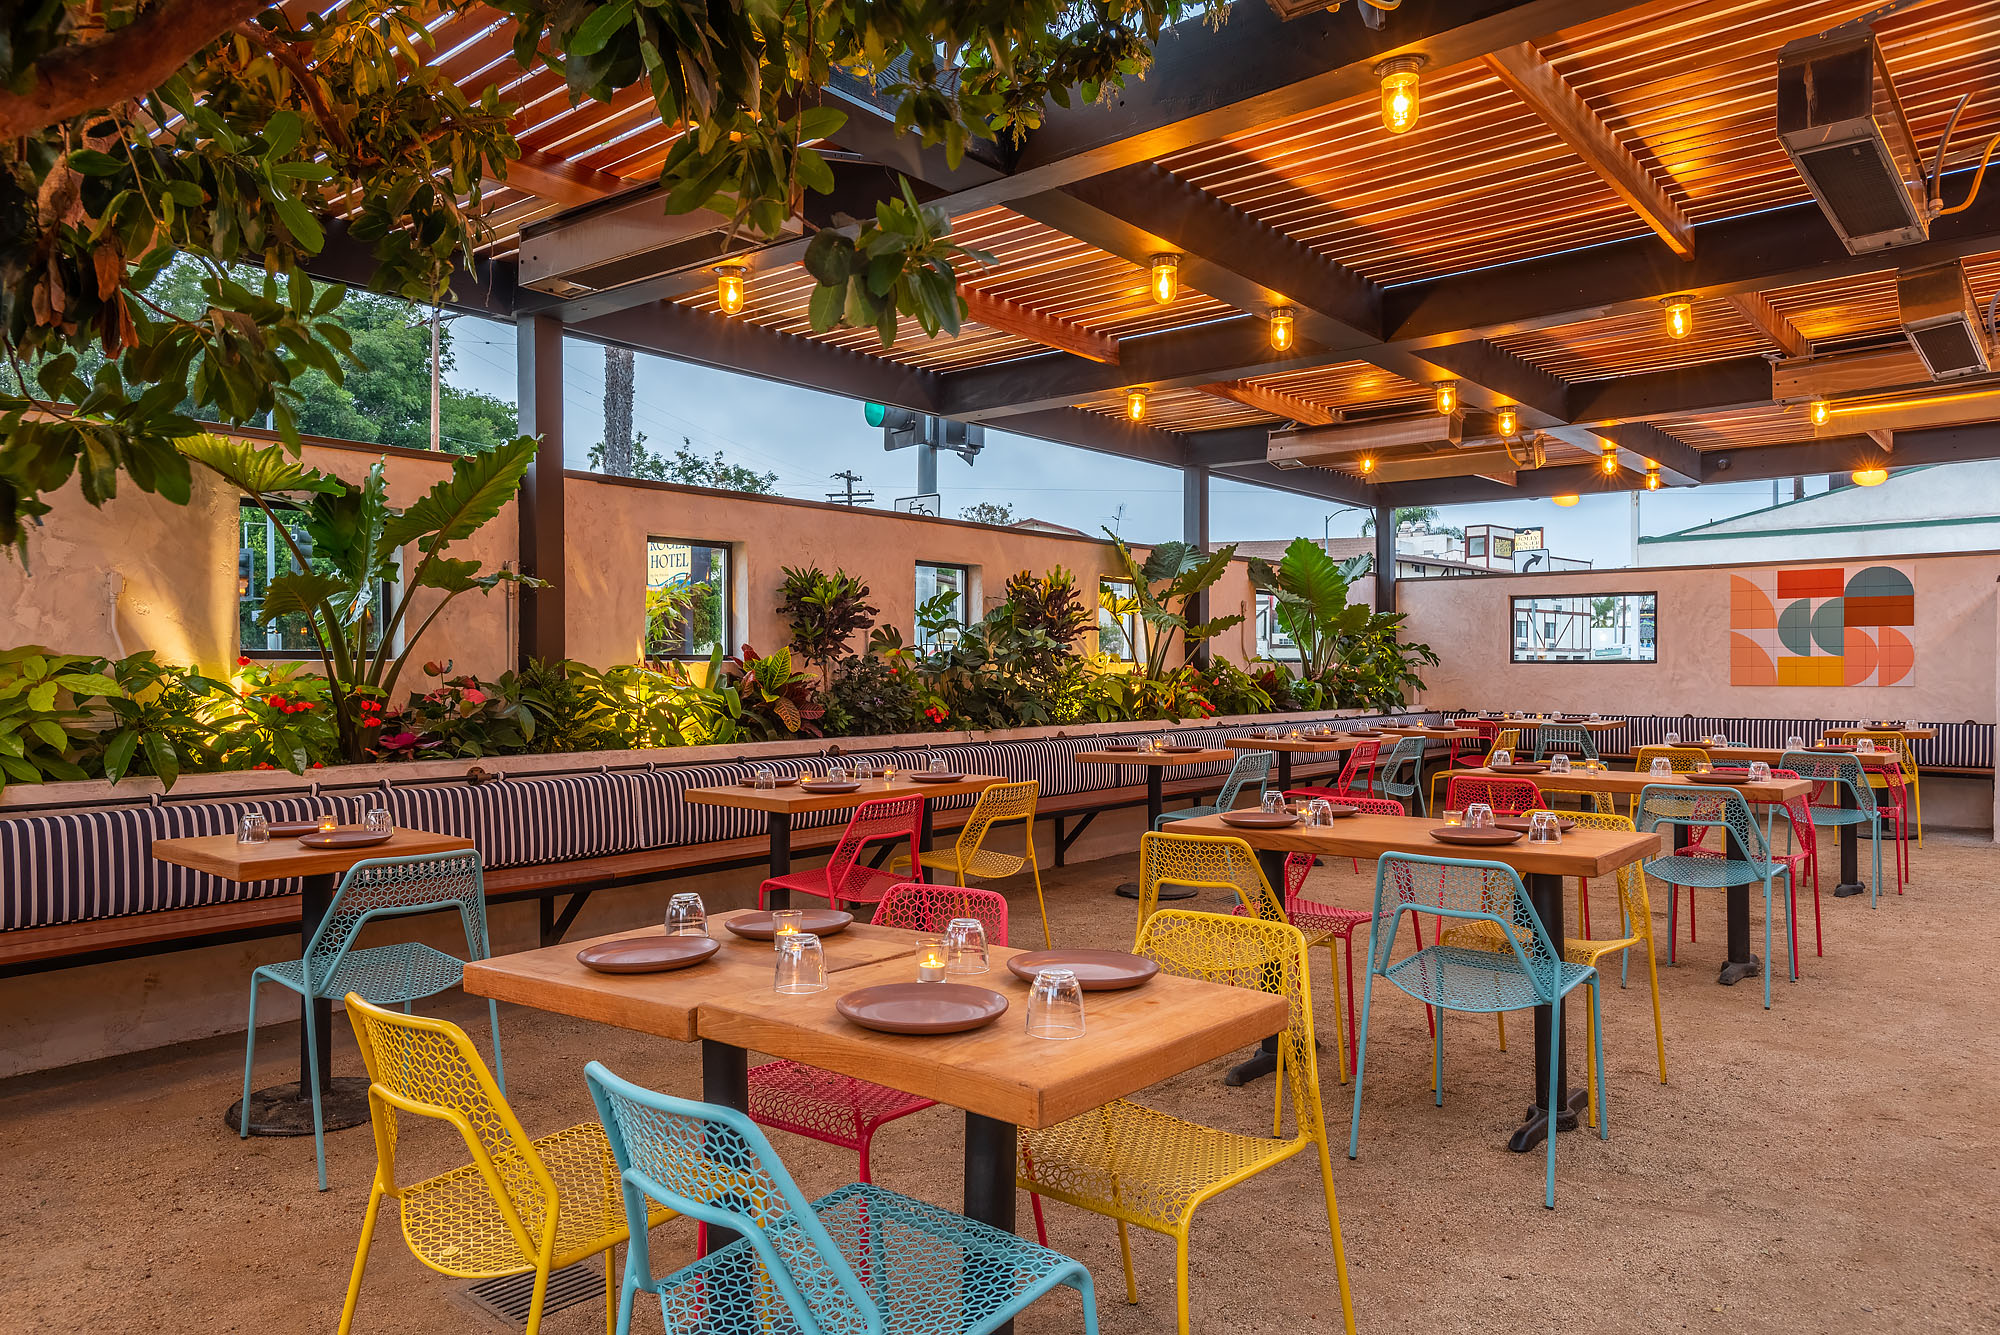 Nueva Venice's colorful covered outdoor patio in Venice, California with yellow and blue chairs.